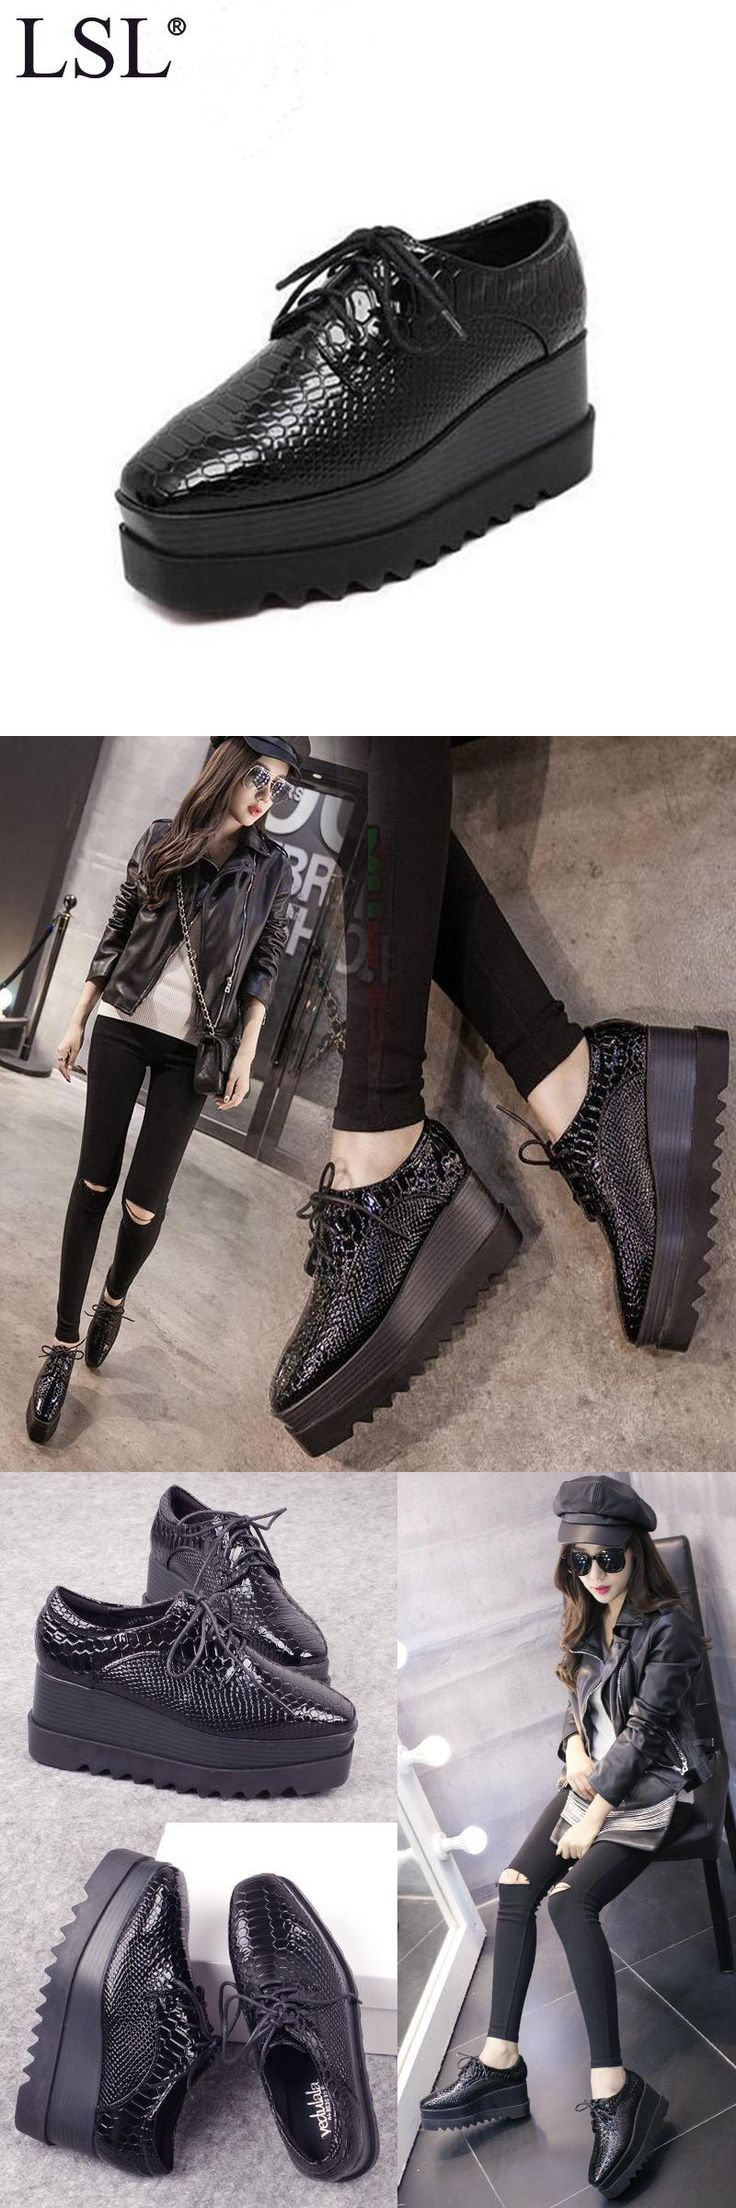 [Visit to Buy] 2017 Spring Oxfords Shoes For Women Black Platform Lace Up Star reepers Women's Oxfords Shoes Casual Ladies Flats Shoes Loafers #Advertisement